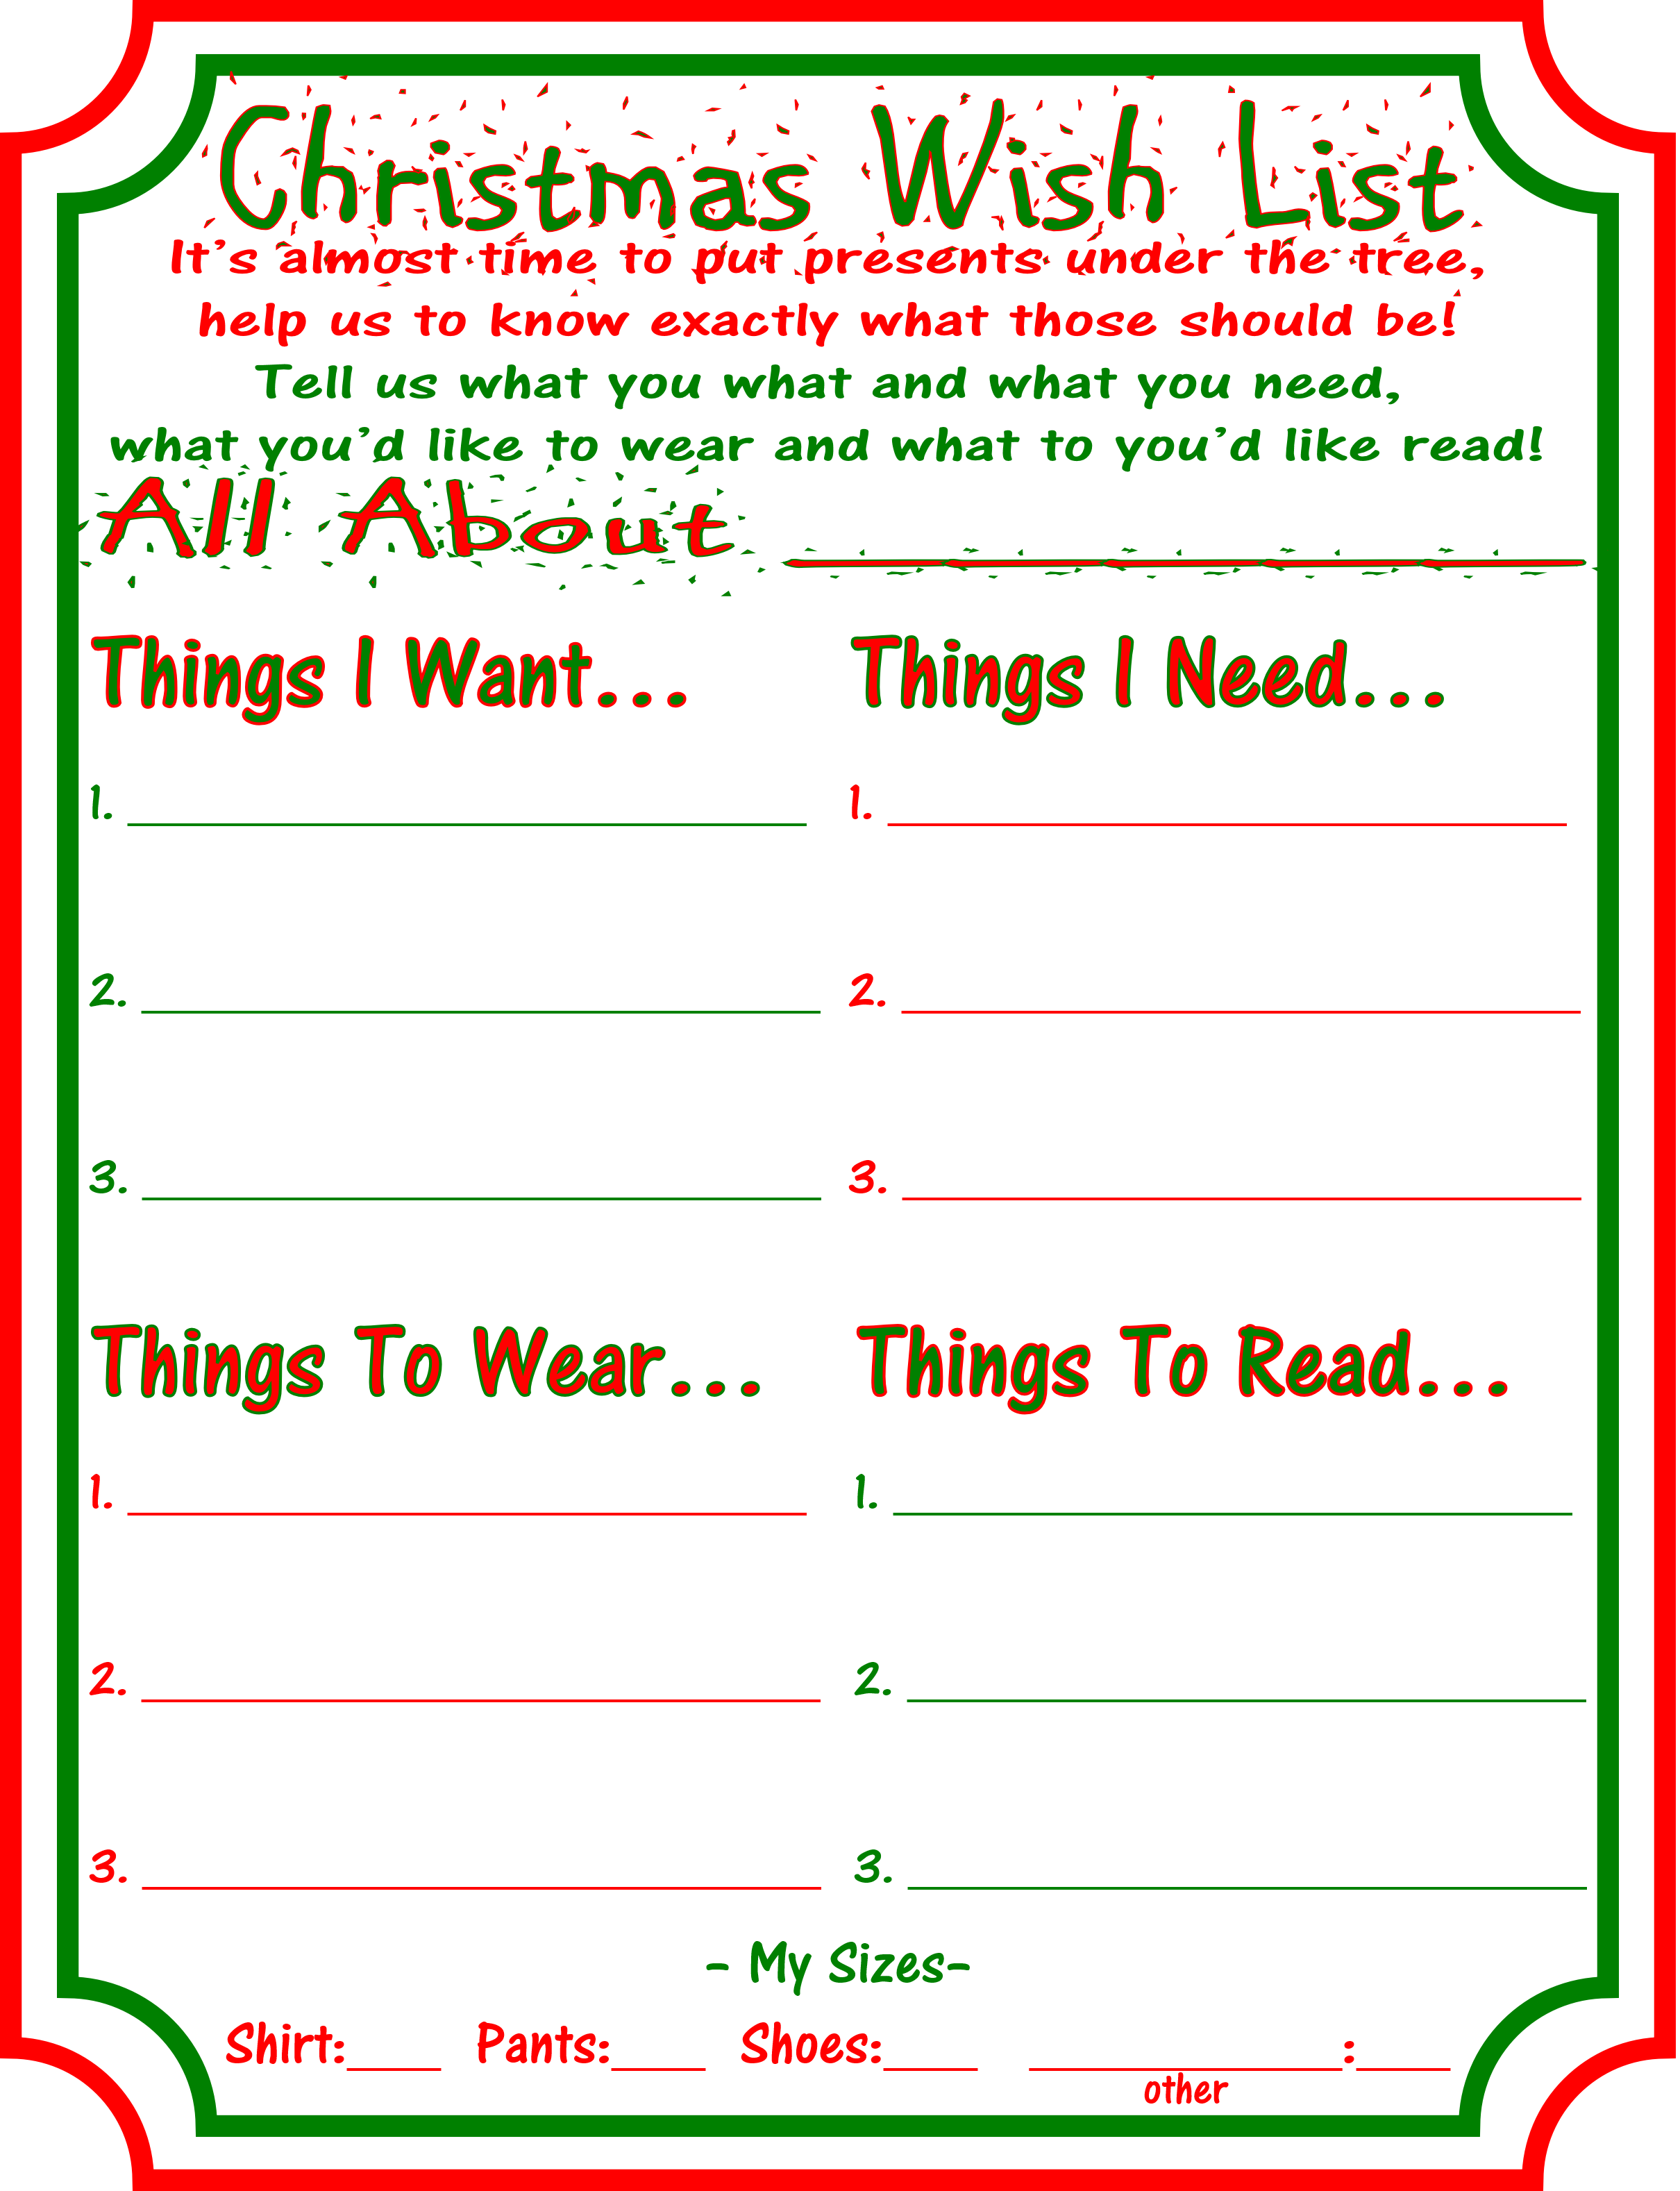 Christmas Wish List Worksheet